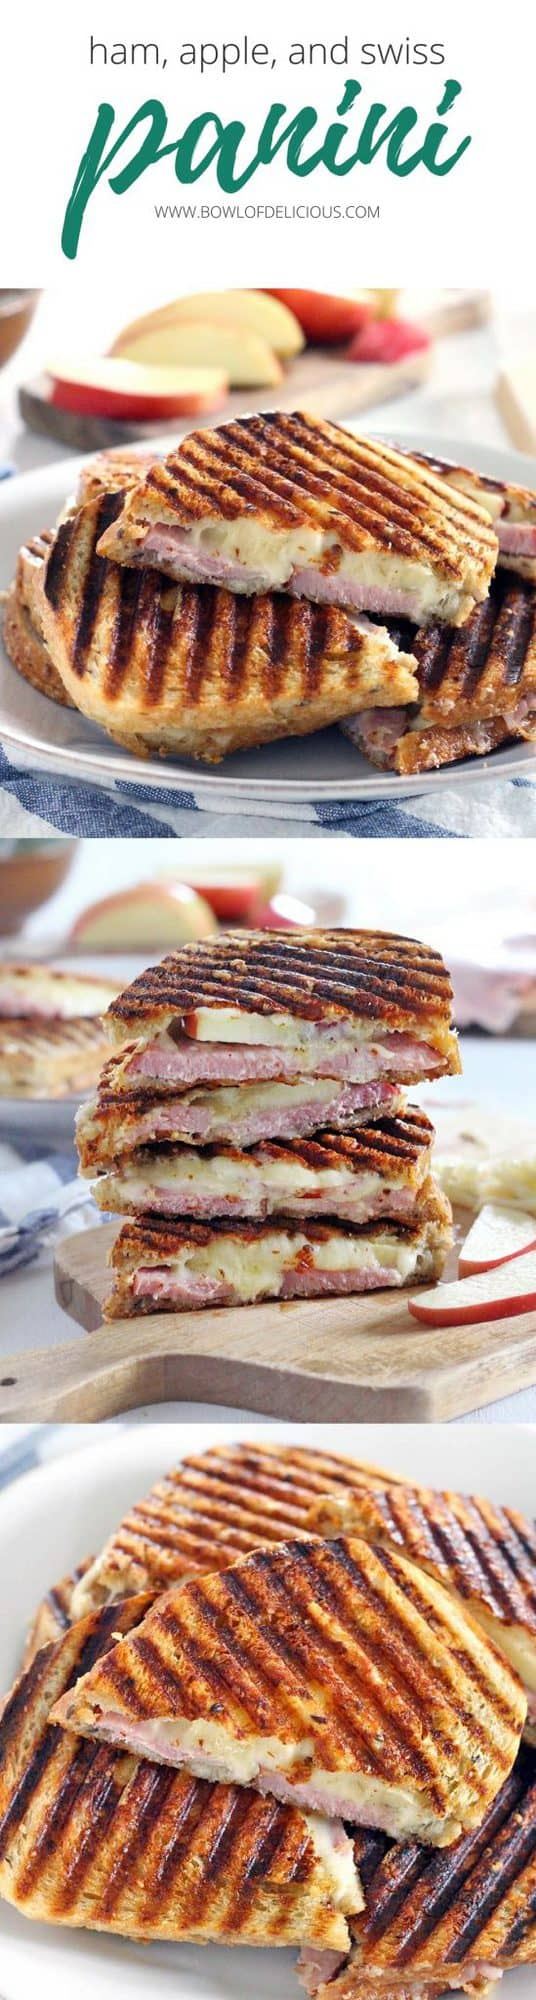 These ham, apple, and swiss panini are the perfect fall sandwich! Use up leftover ham from the holidays and take advantage of the crisp apples the season has to offer. #sandwiches #fallrecipes #apples